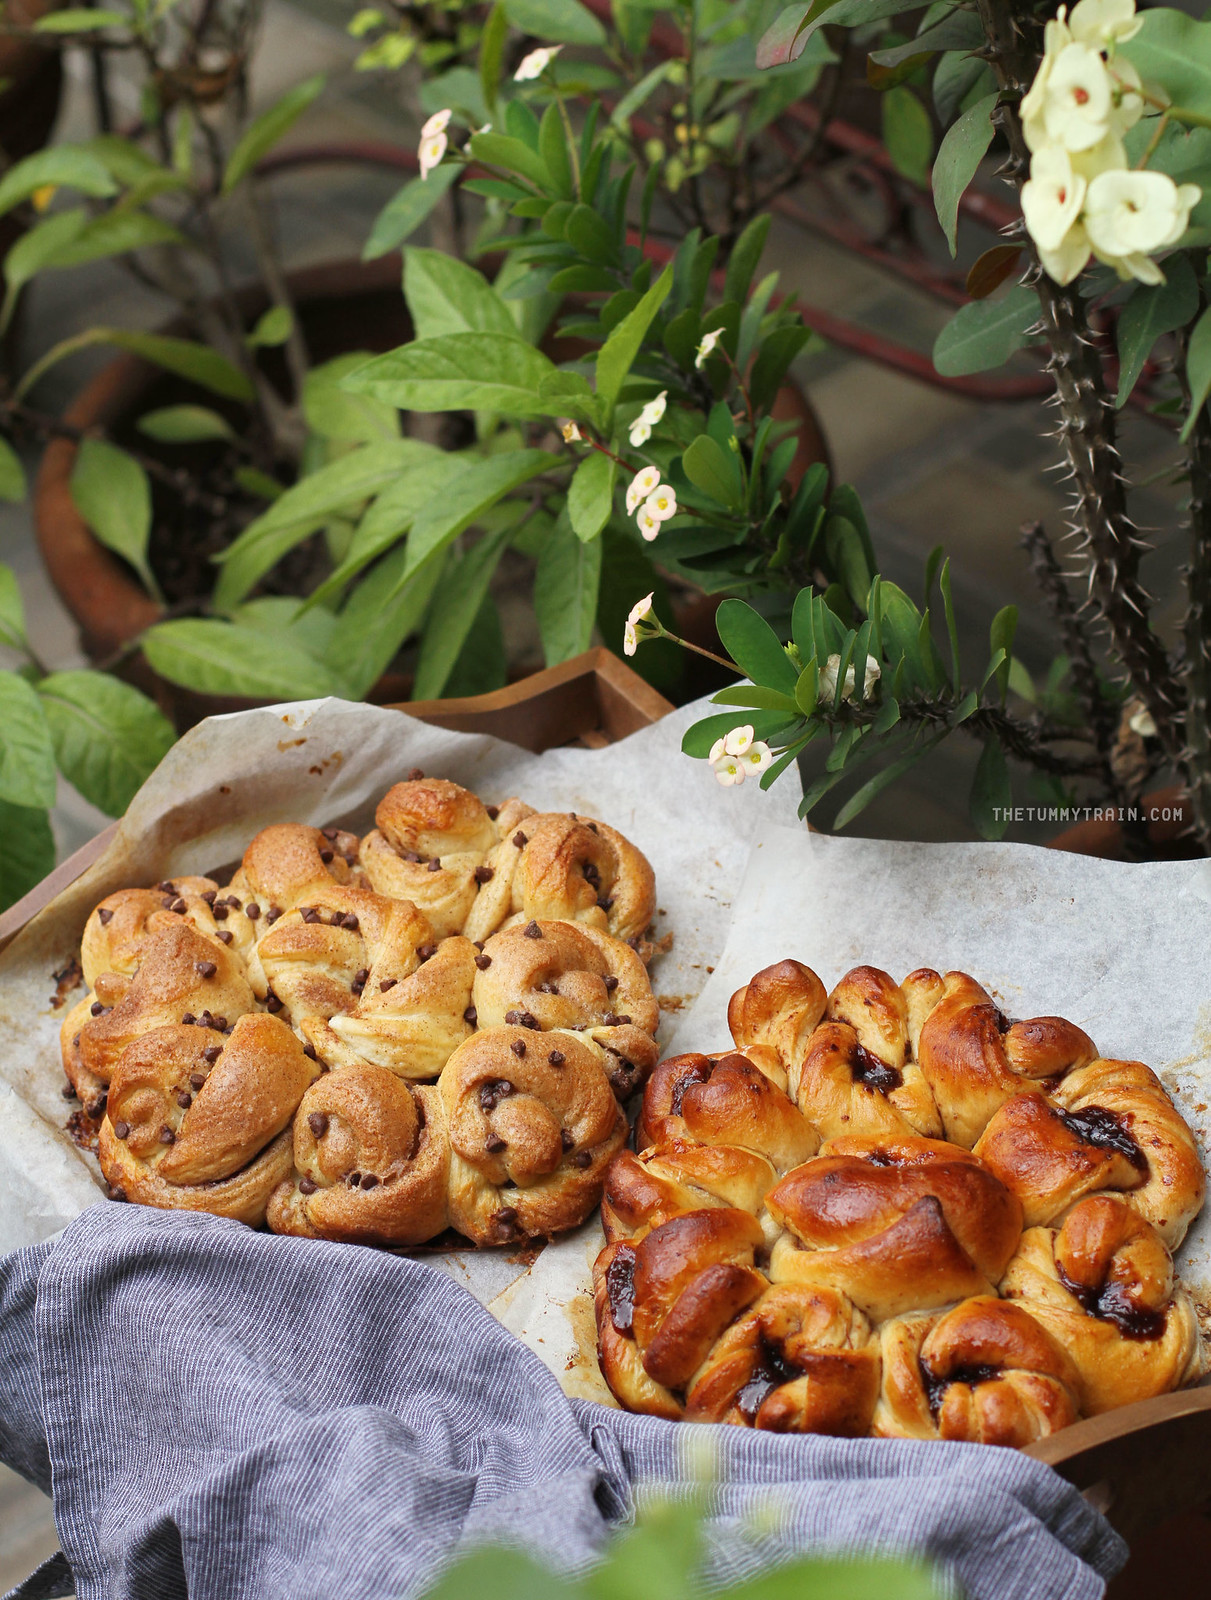 33915307666 be9e63901a h - Lovely Easter Blossom Pull-Apart Bread to put you in the mood for spring